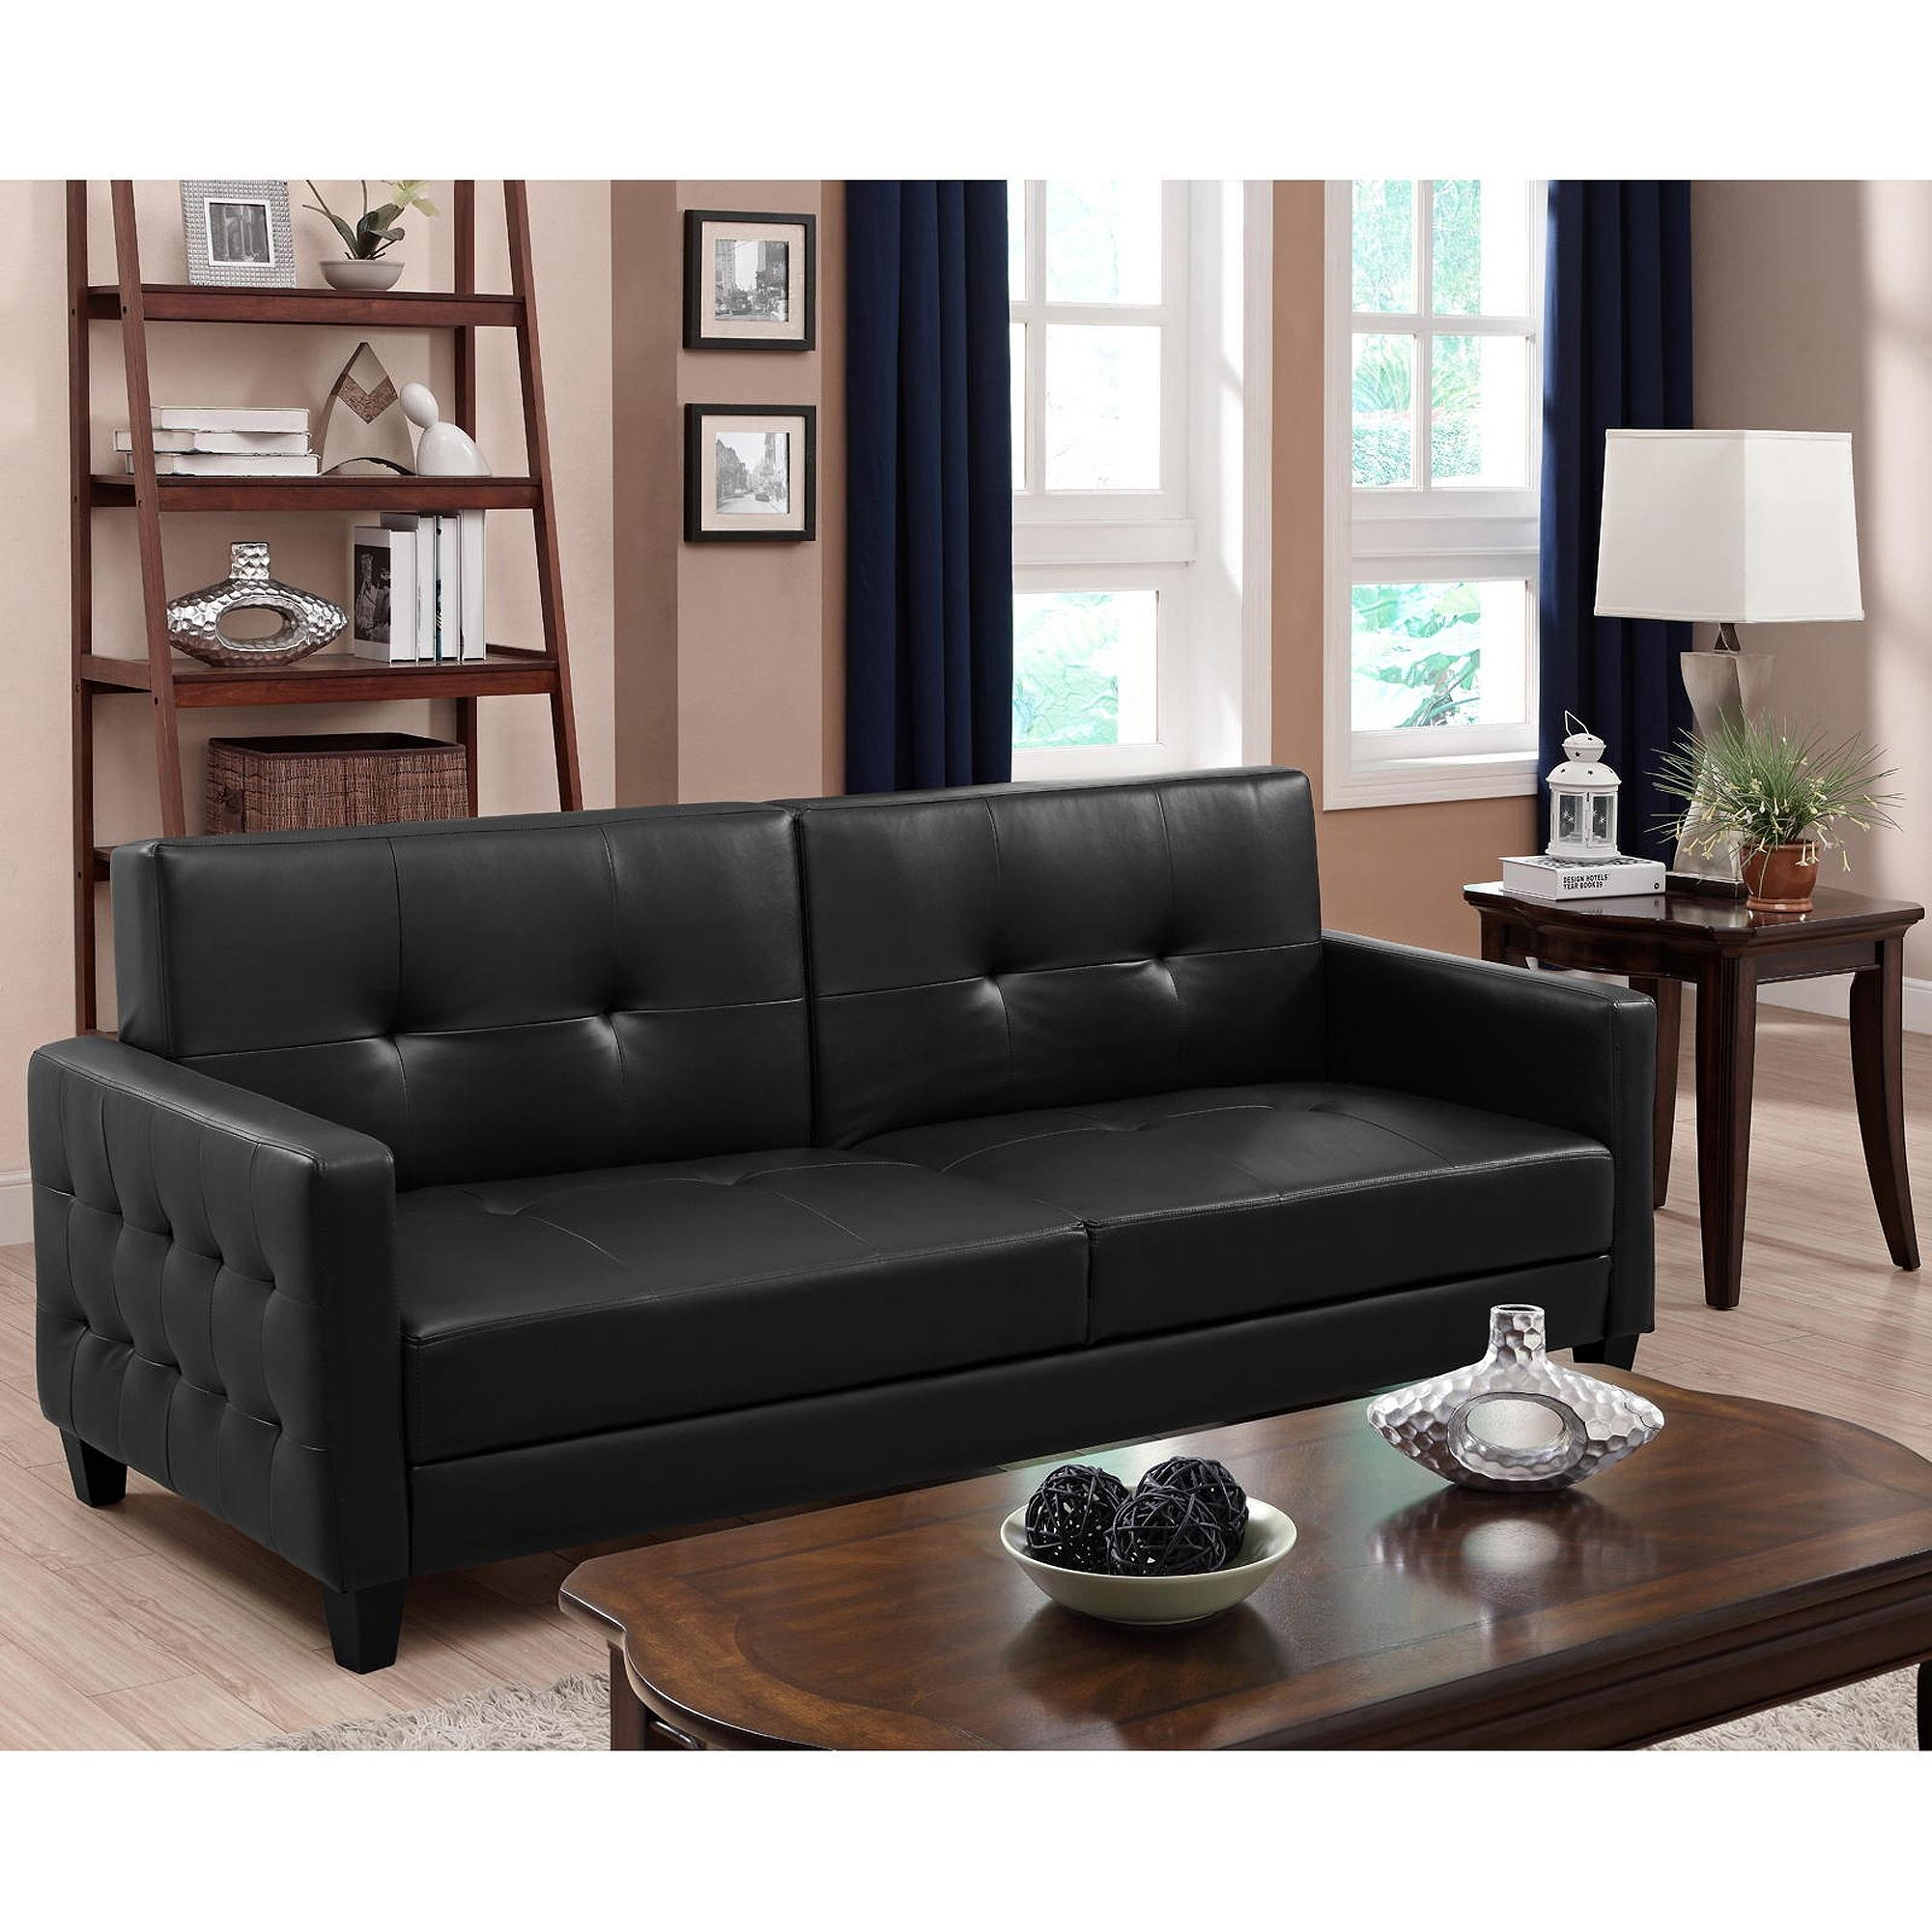 Premium Rome Convertible Futon, Multiple Colors – Walmart Within Black Leather Convertible Sofas (Image 19 of 20)